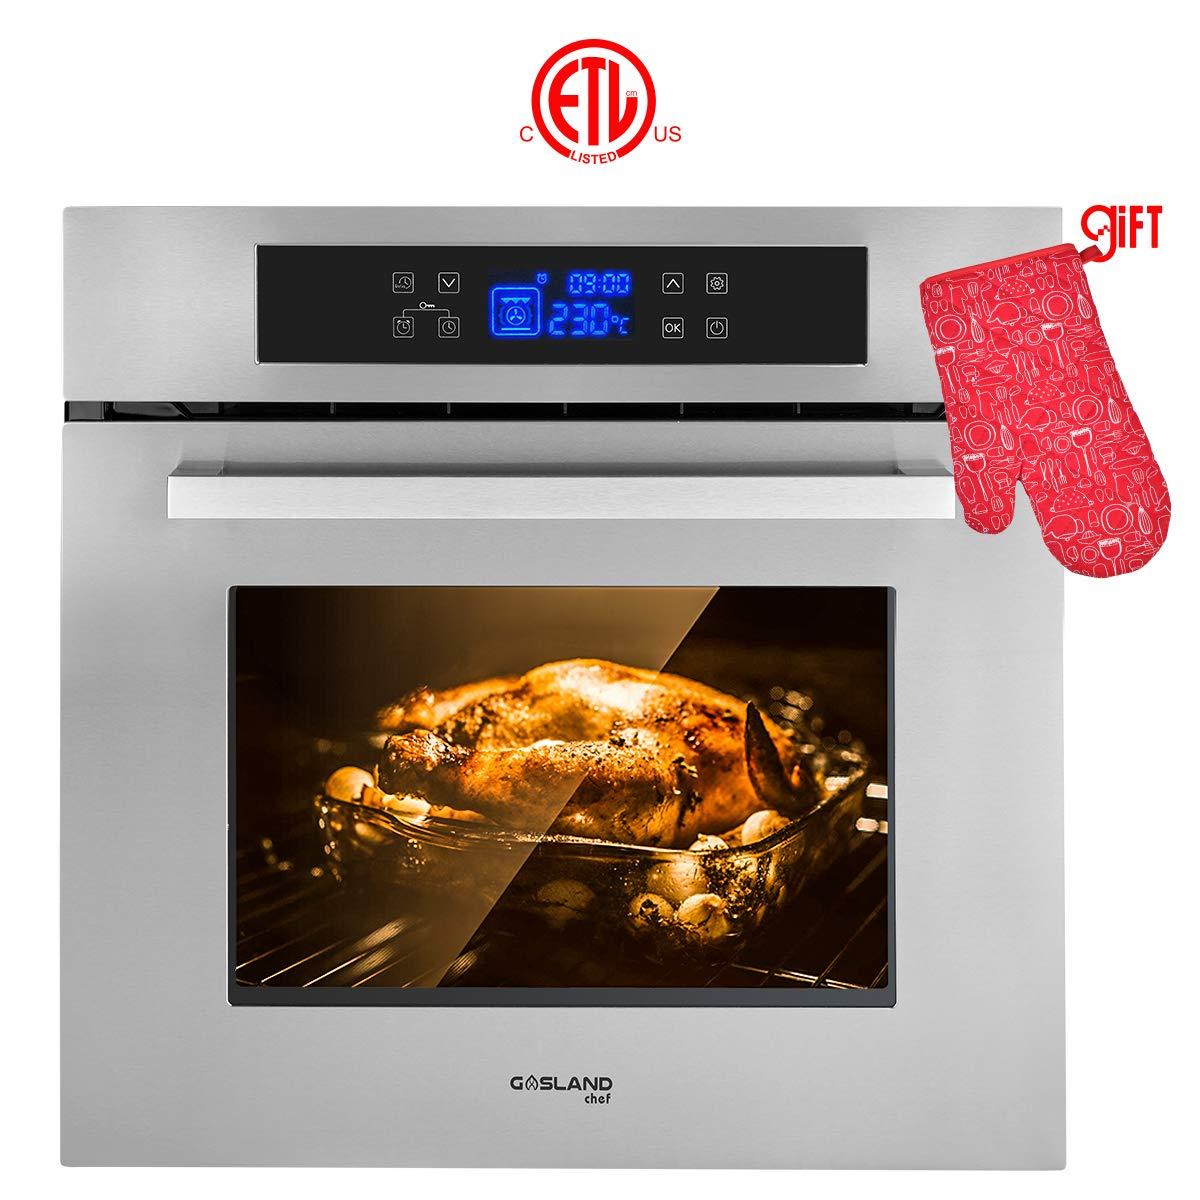 Wall Oven, Gasland Chef ES611TS 24'' Built-in Single Wall Oven, 11 Cooking Function, Stainless Steel Frame with American Black Glass Electric Wall Oven, ETL Safety Certified & Full Touch Control by GASLAND